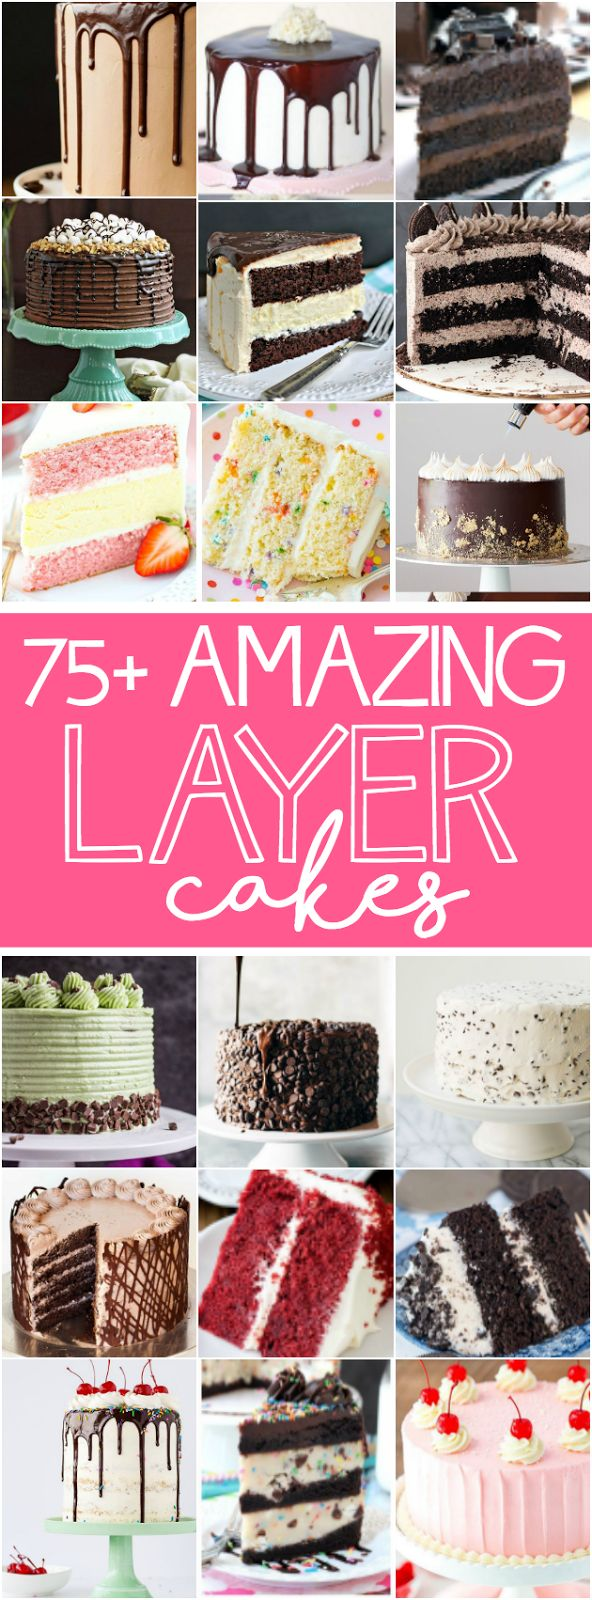 75+ Amazing Layer Cakes http://www.keatseats.com/2017/06/75-amazing-layer-cakes.html?utm_campaign=coschedule&utm_source=pinterest&utm_medium=Something%20Swanky&utm_content=75%2B%20Amazing%20Layer%20Cakes